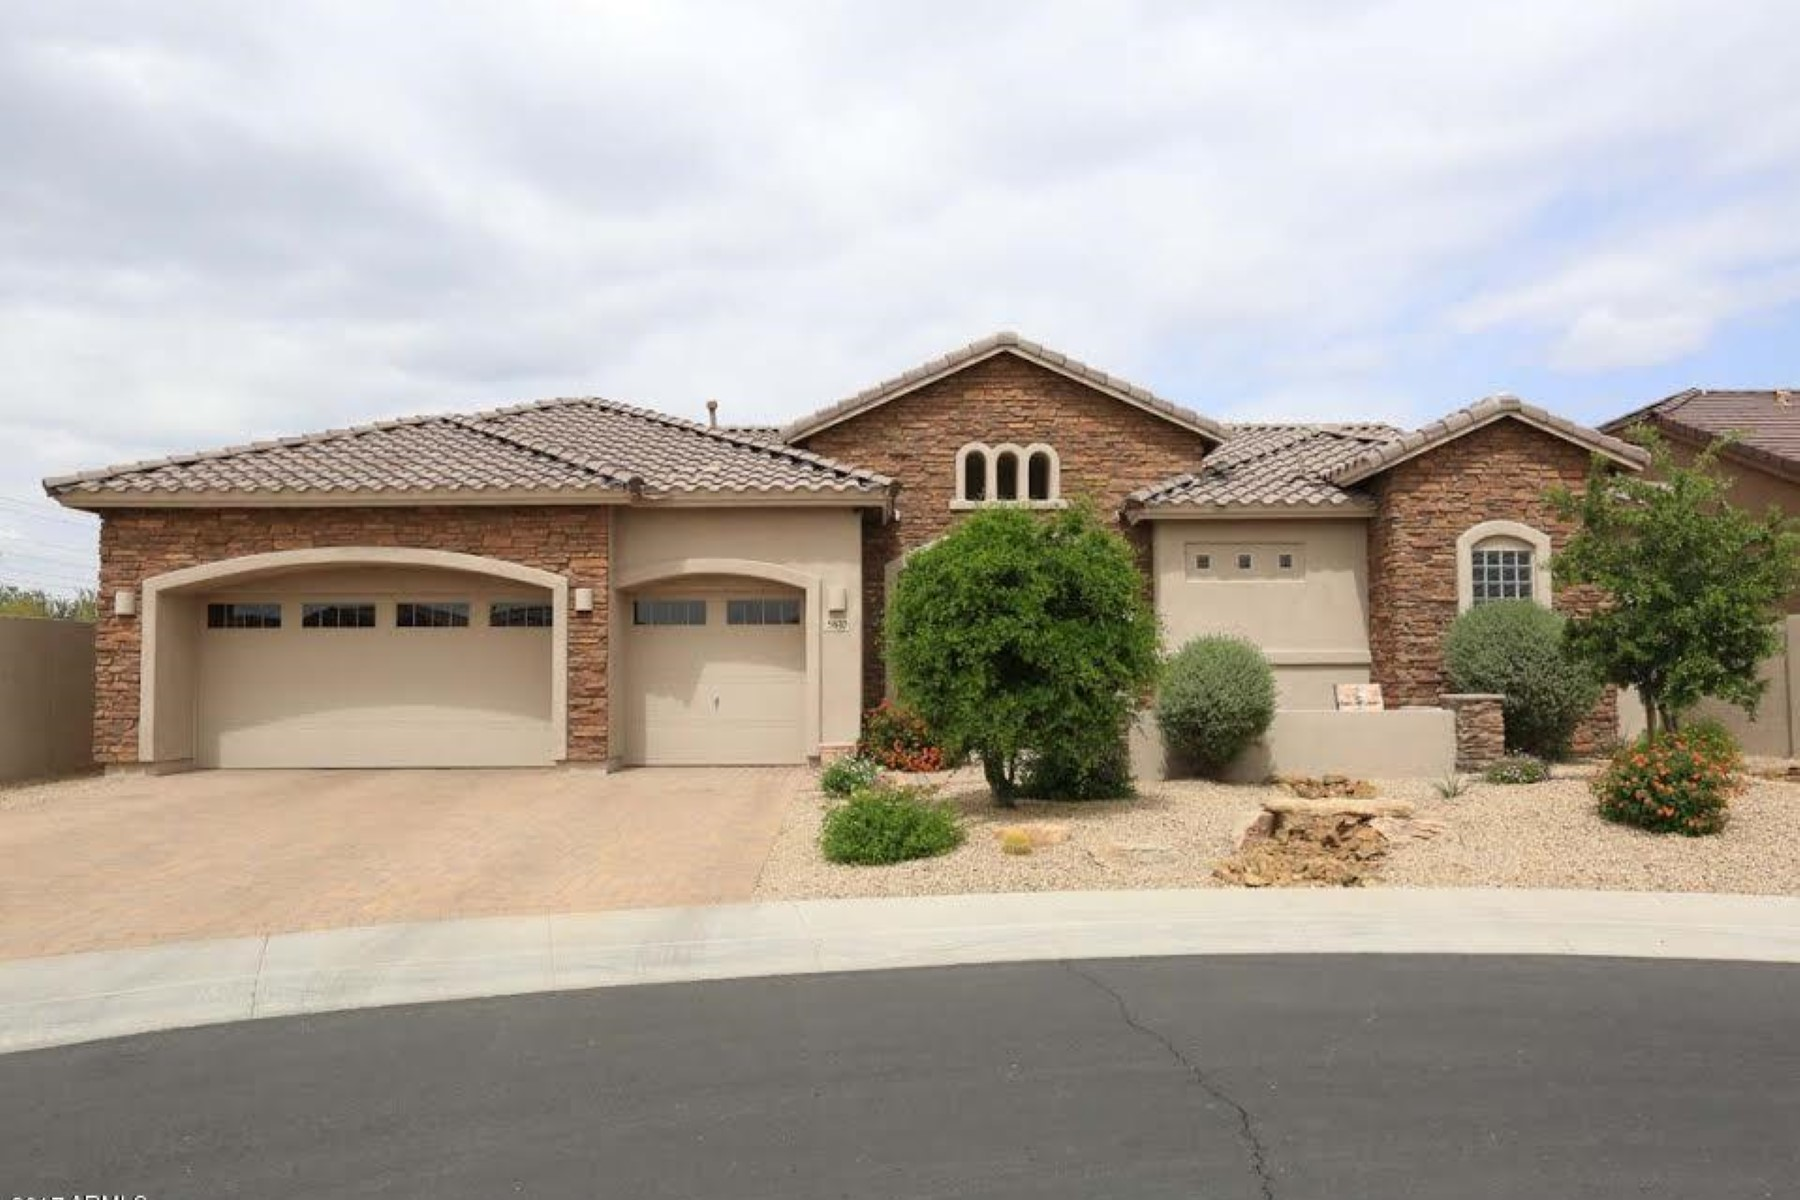 Single Family Home for Sale at Charming home in the highly desirable Lone Mountain Ranch gated community 5610 E Sleepy Ranch Rd Cave Creek, Arizona, 85331 United States